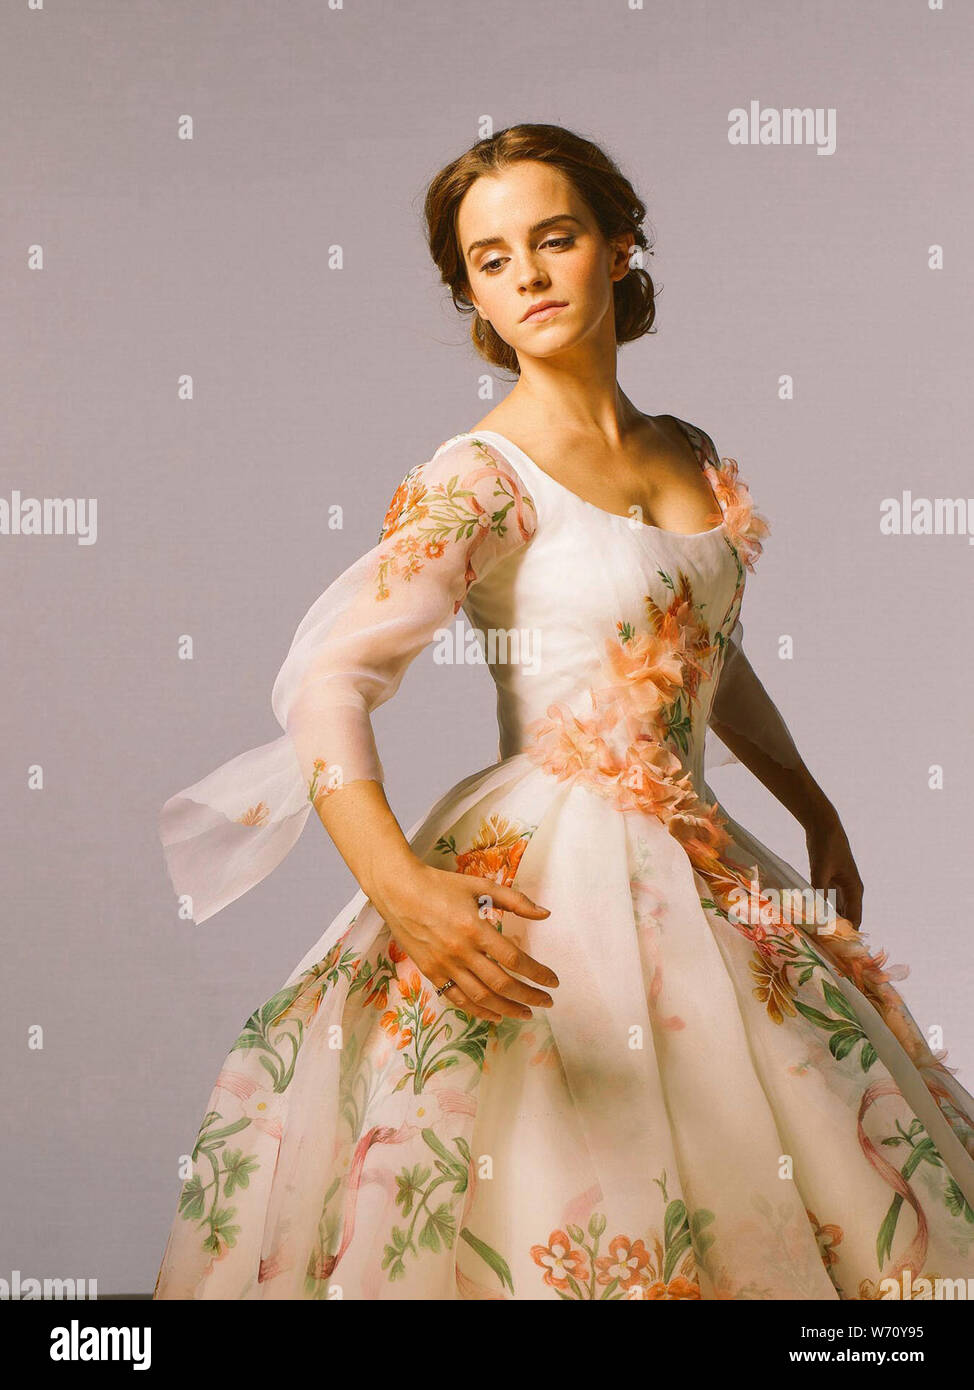 Emma Watson In Beauty And The Beast 2017 Directed By Bill Condon Credit Mandevilles Films Walt Disney Pictures Album Stock Photo Alamy